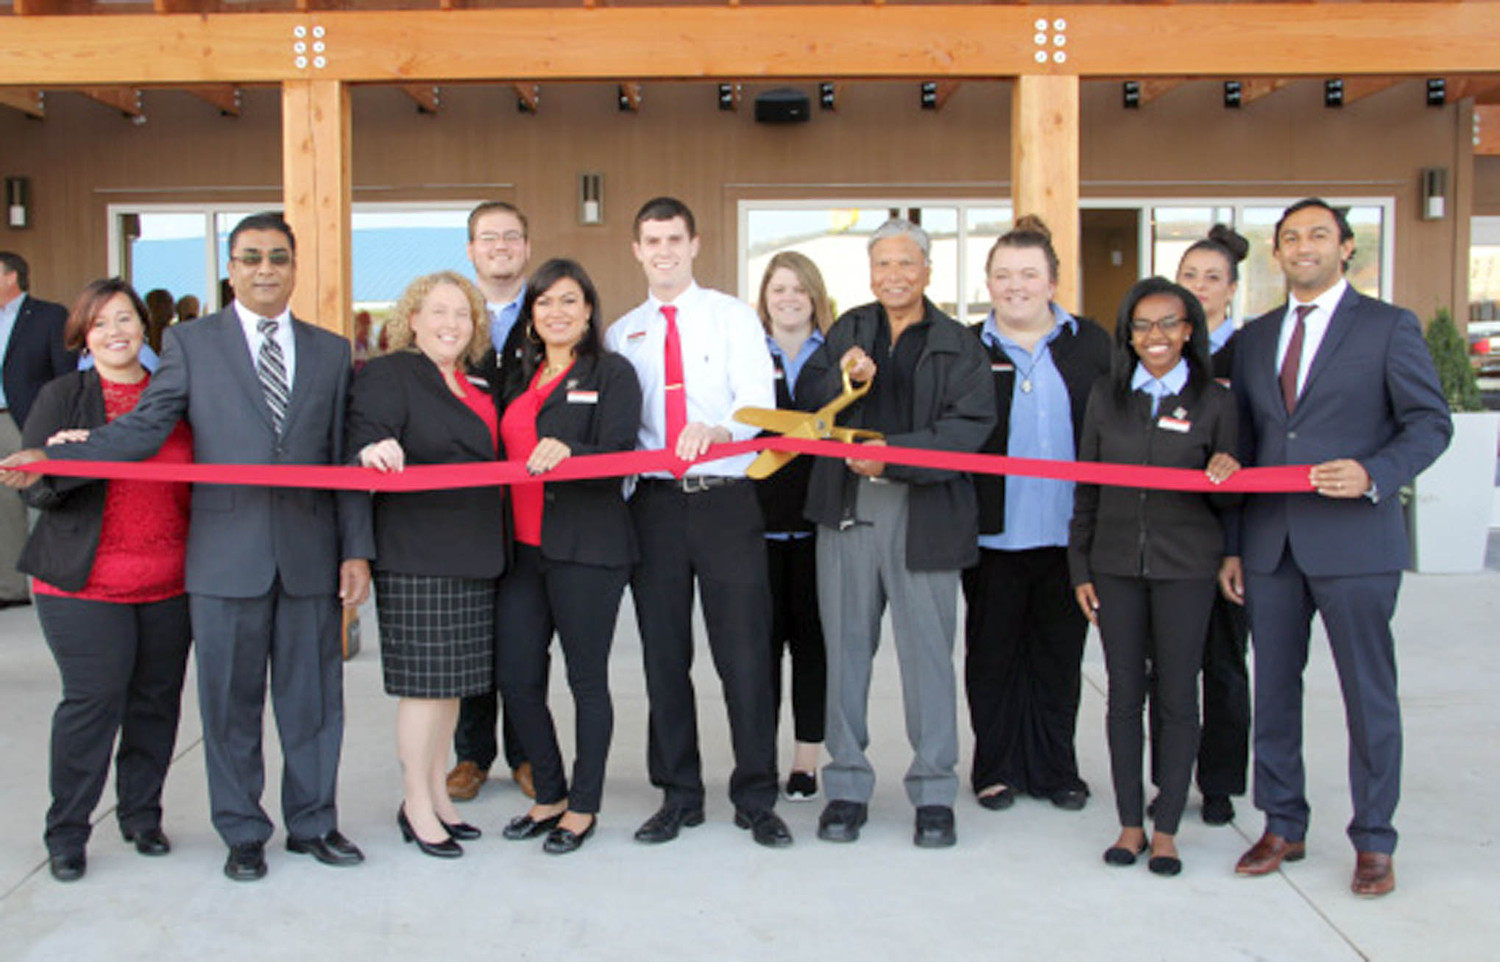 A RIBBON-CUTTING was held recently at TownePlace Suites by Marriott, located at 160 Bernham Drive N.W. in Cleveland. Management and staff are shown during the recent celebration.